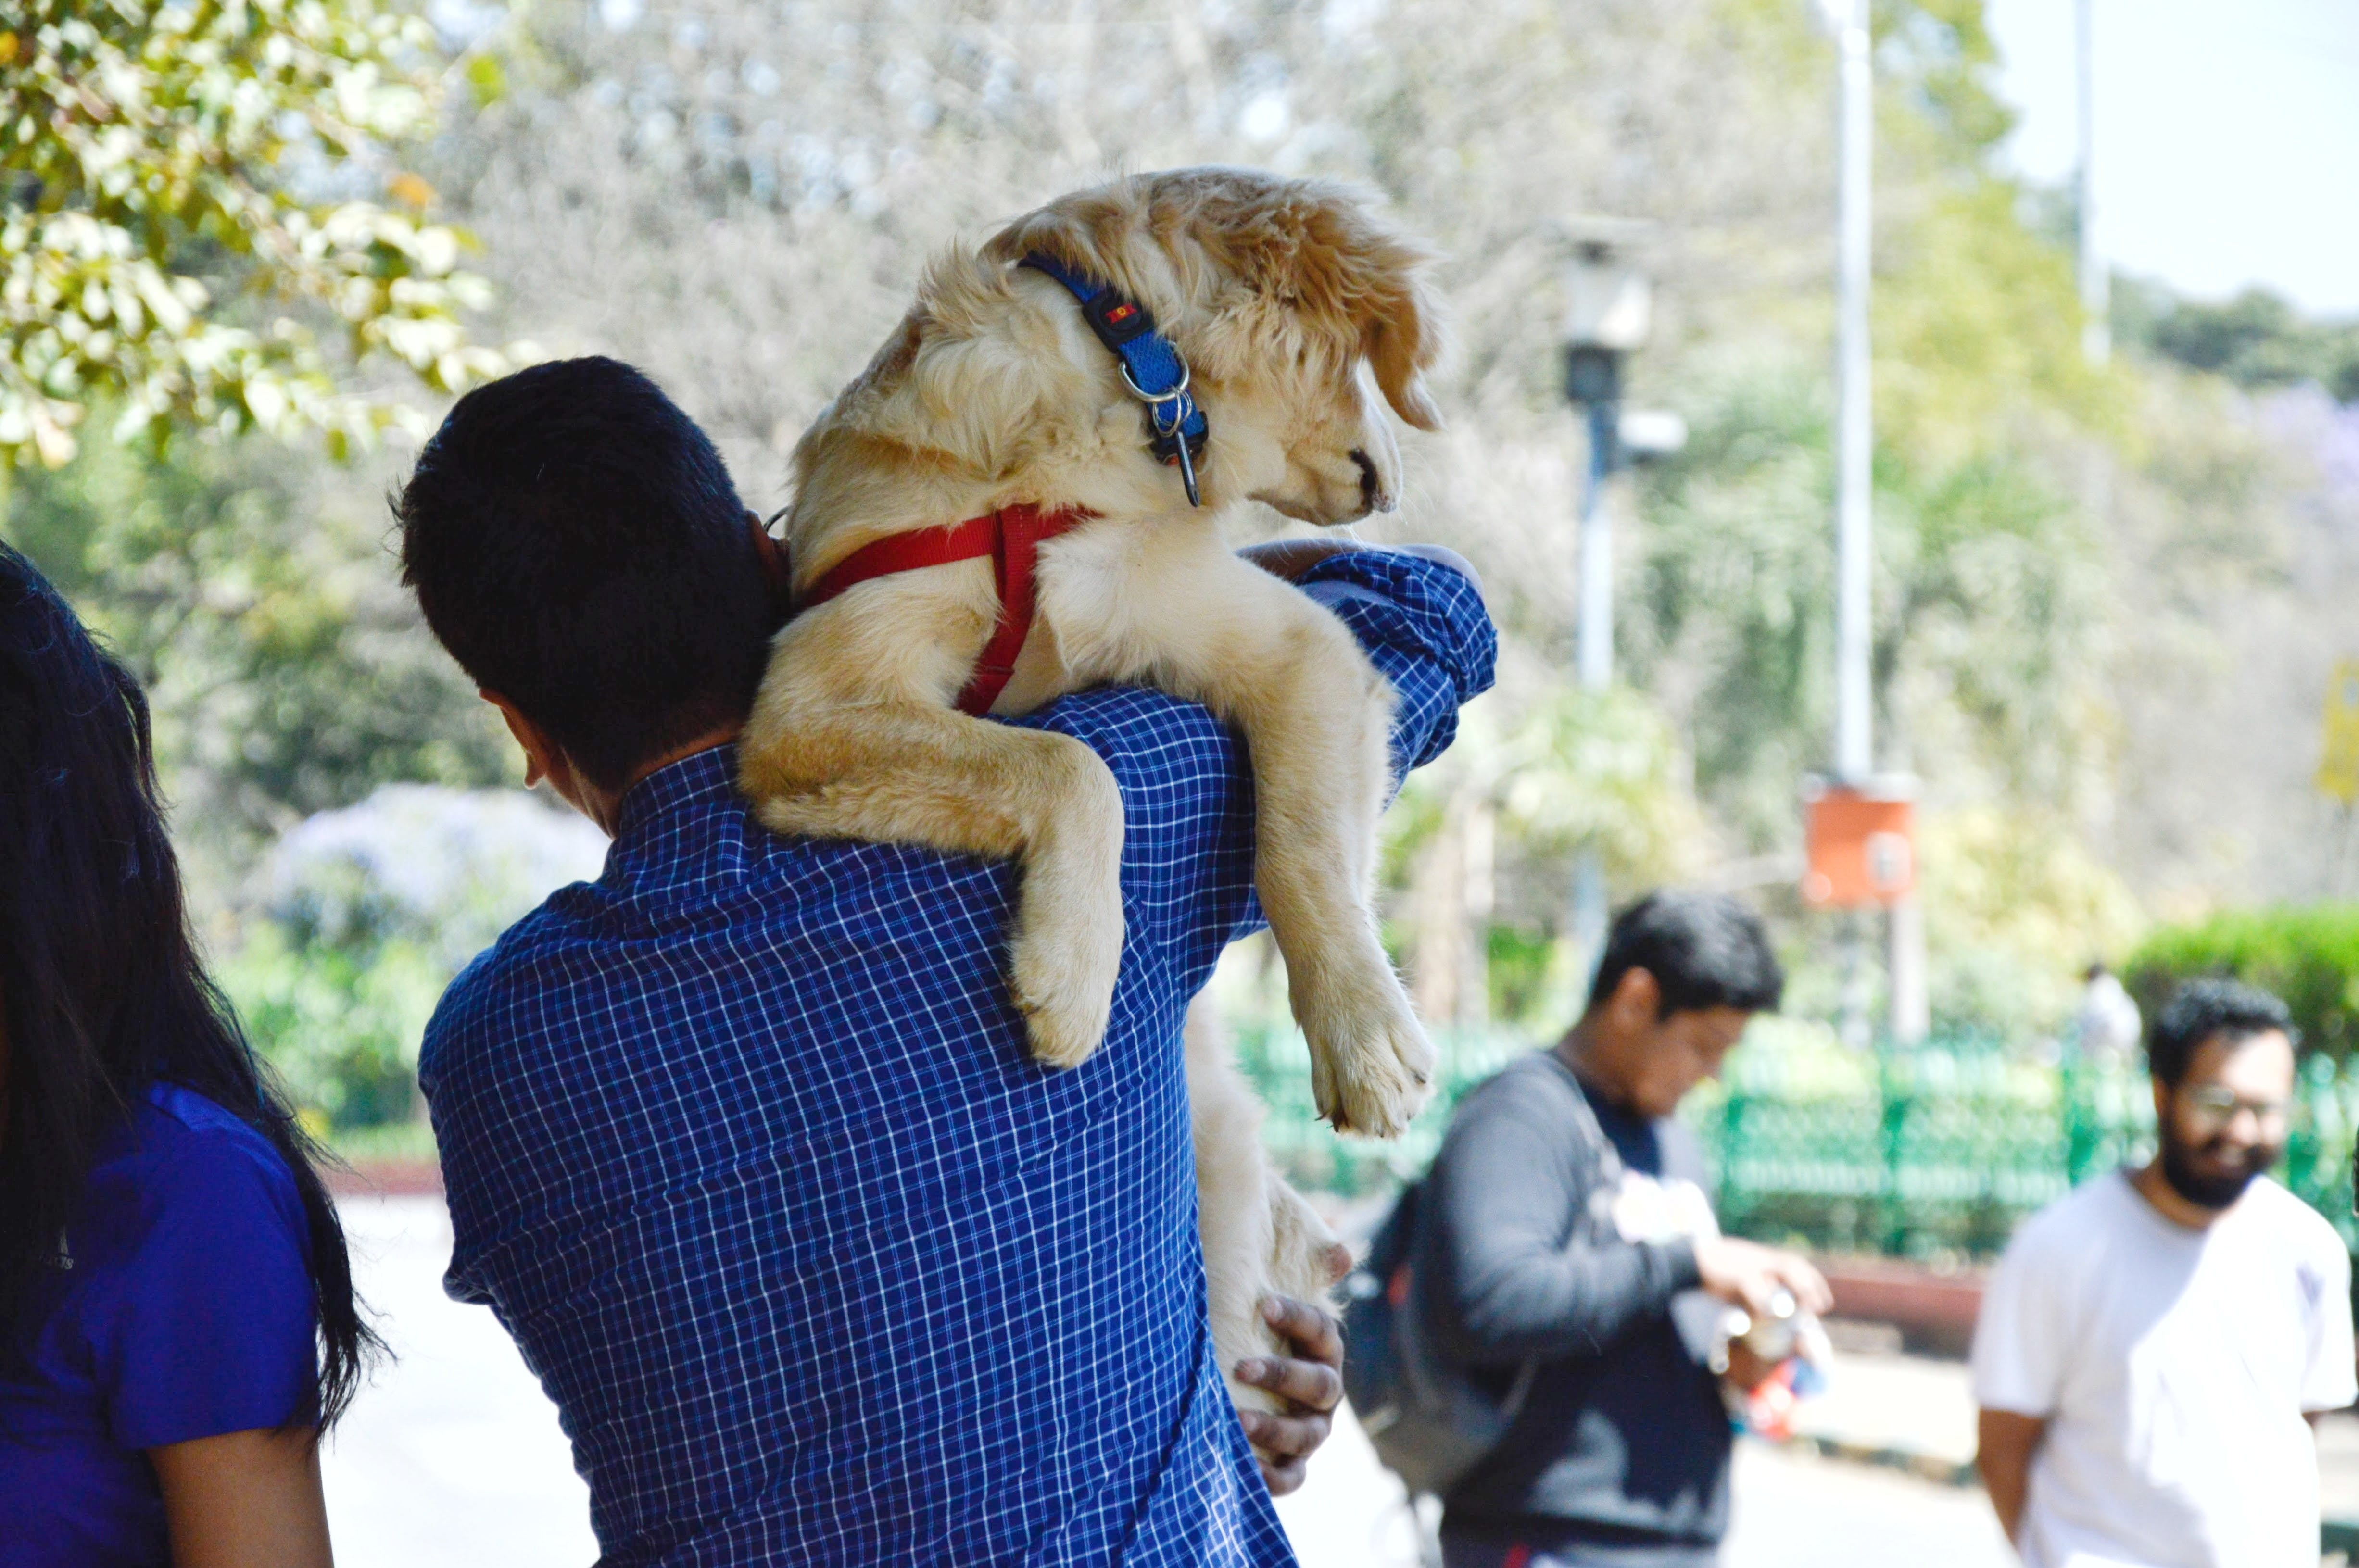 Man In Blue Long-sleeved Shirt Carrying Dog